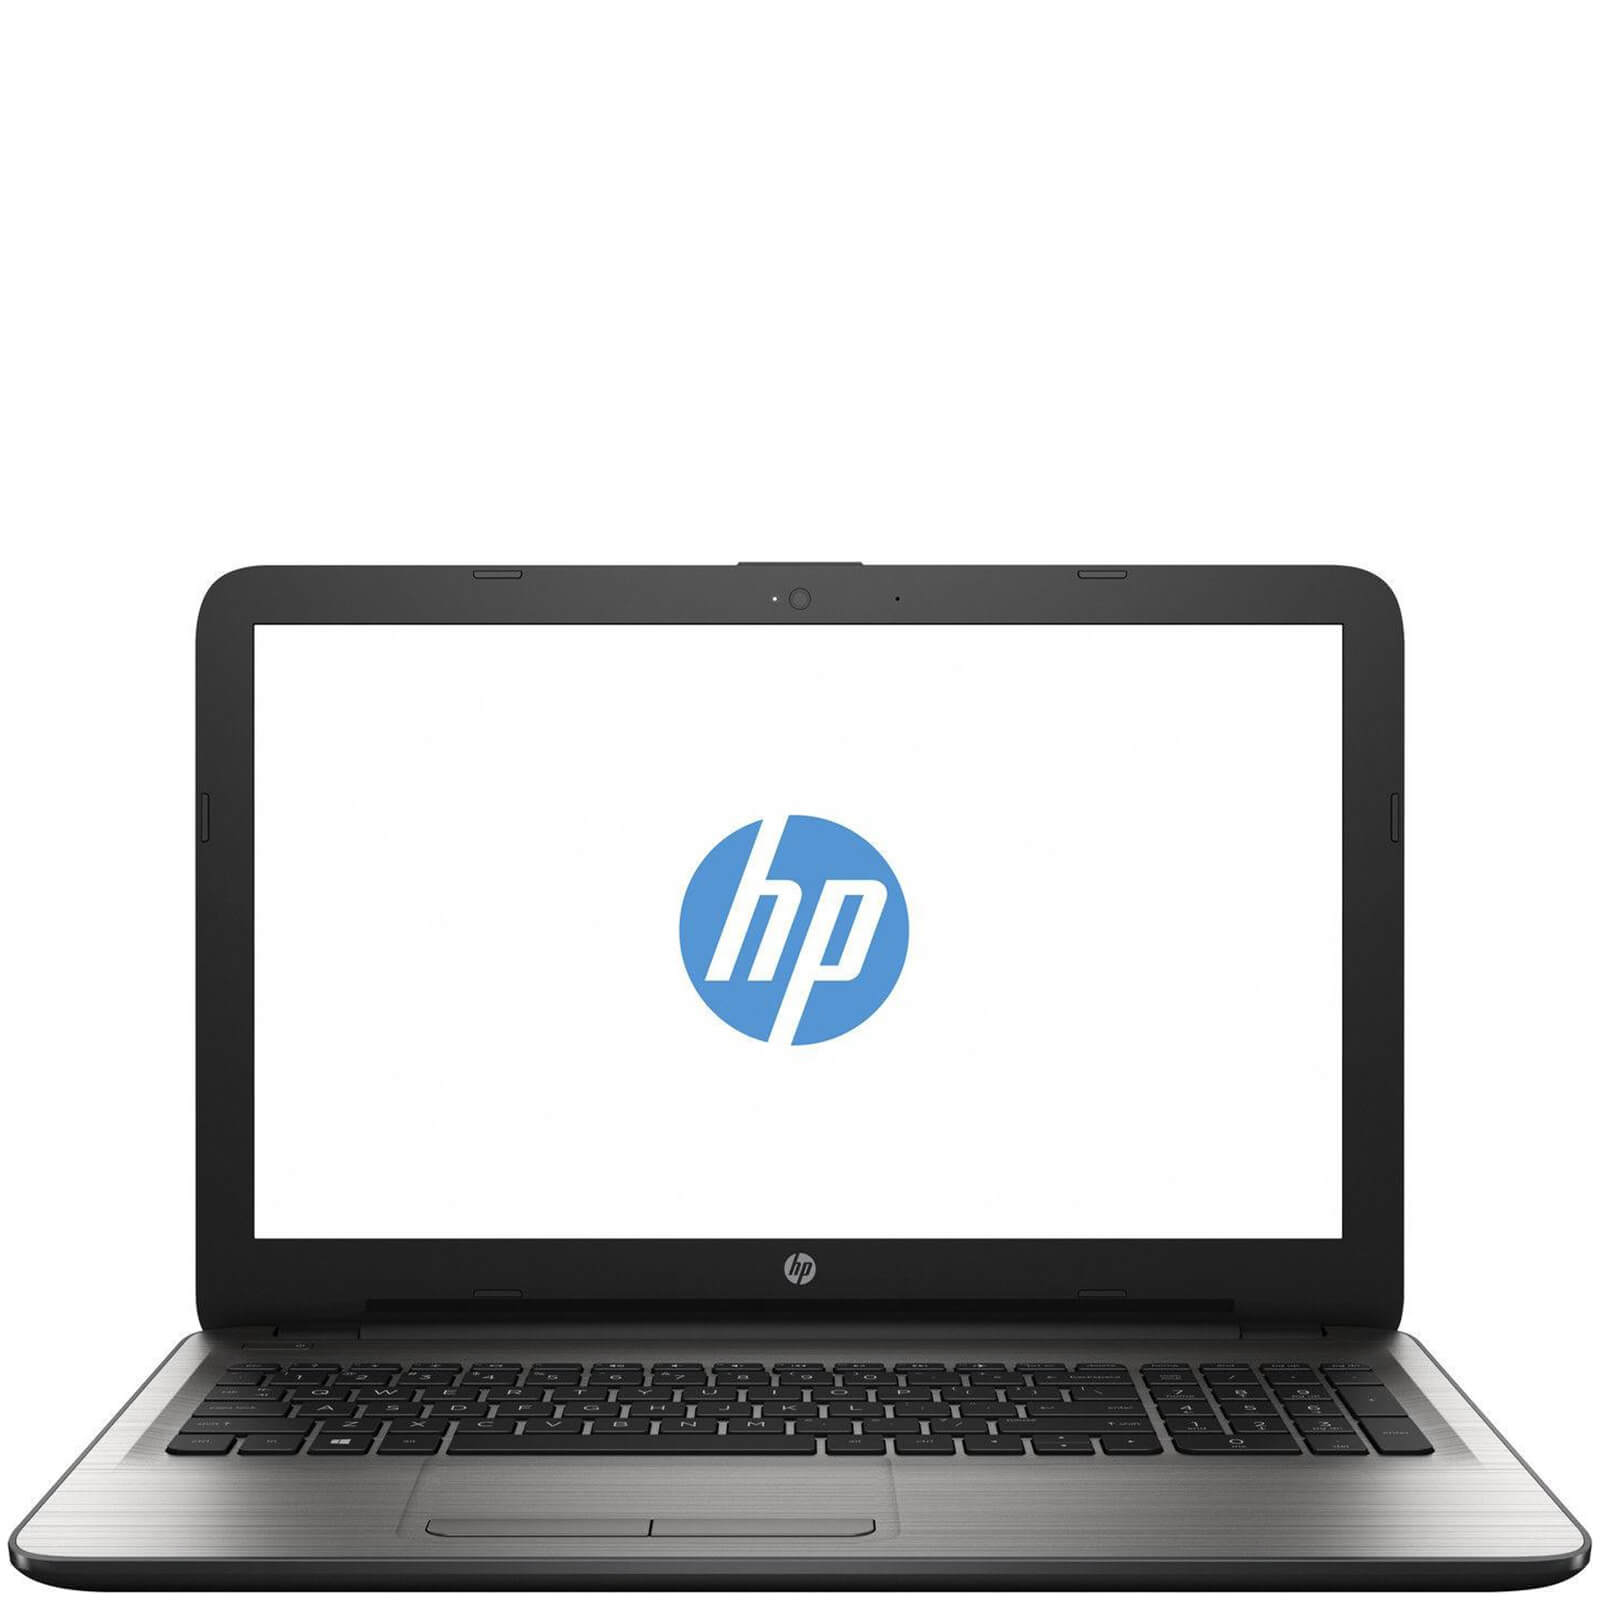 "HP 15-BA010NA 15.6"""" Laptop (AMD Quad-Core A10-9600P, 8GB. 2TB, 2.4GHz, Windows 10) - Silver - Manufacturer Refurbished"